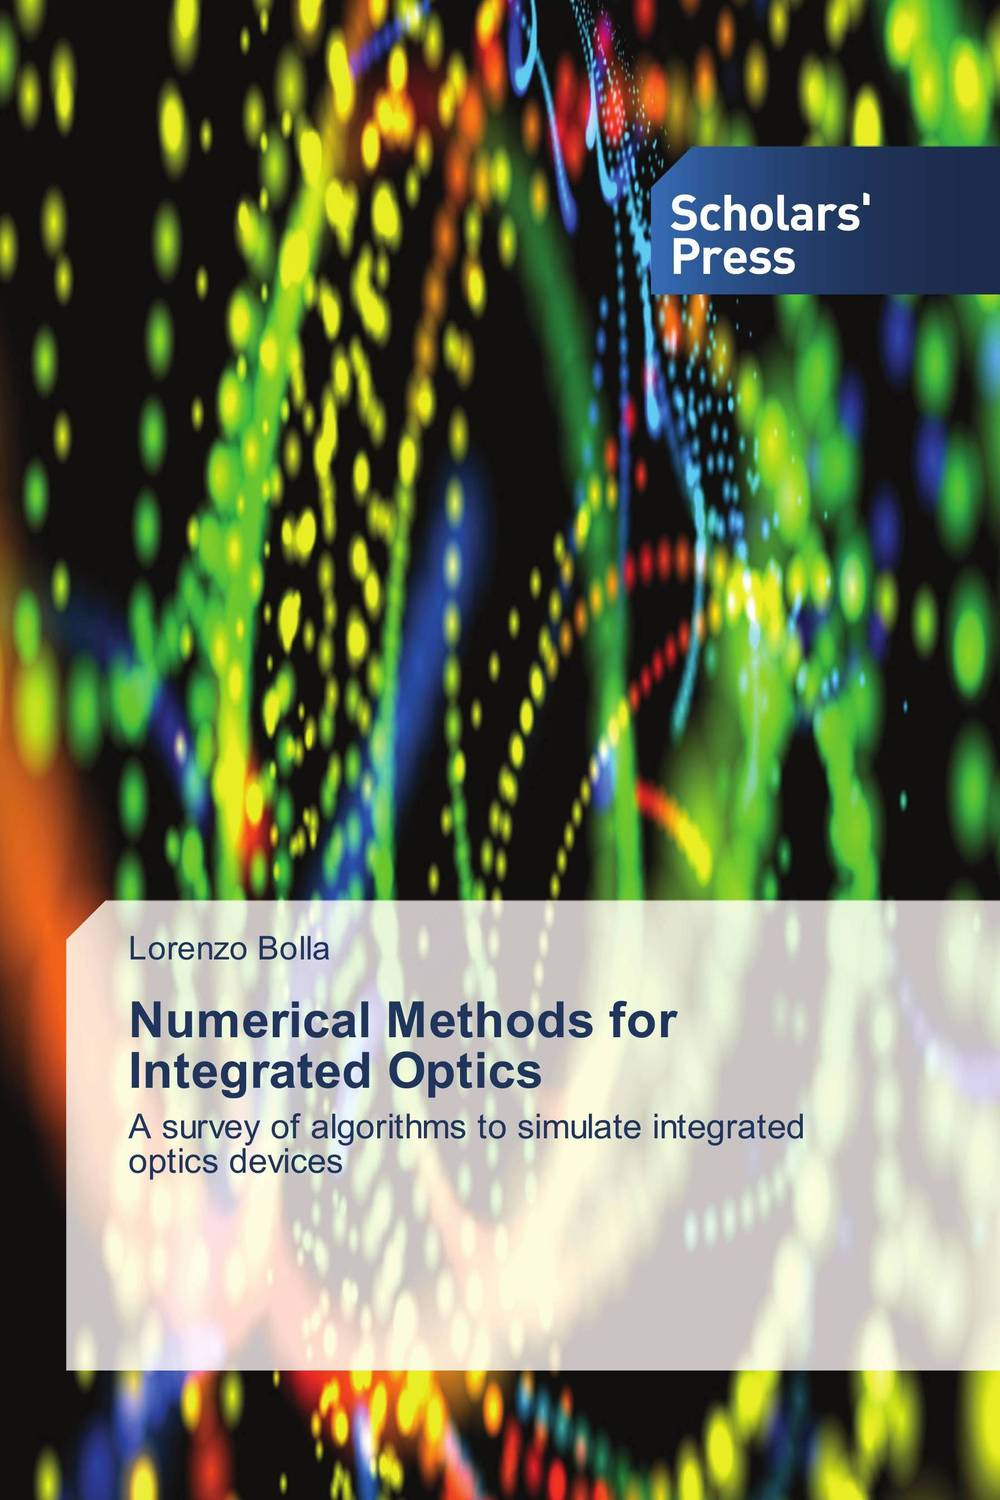 Numerical Methods for Integrated Optics